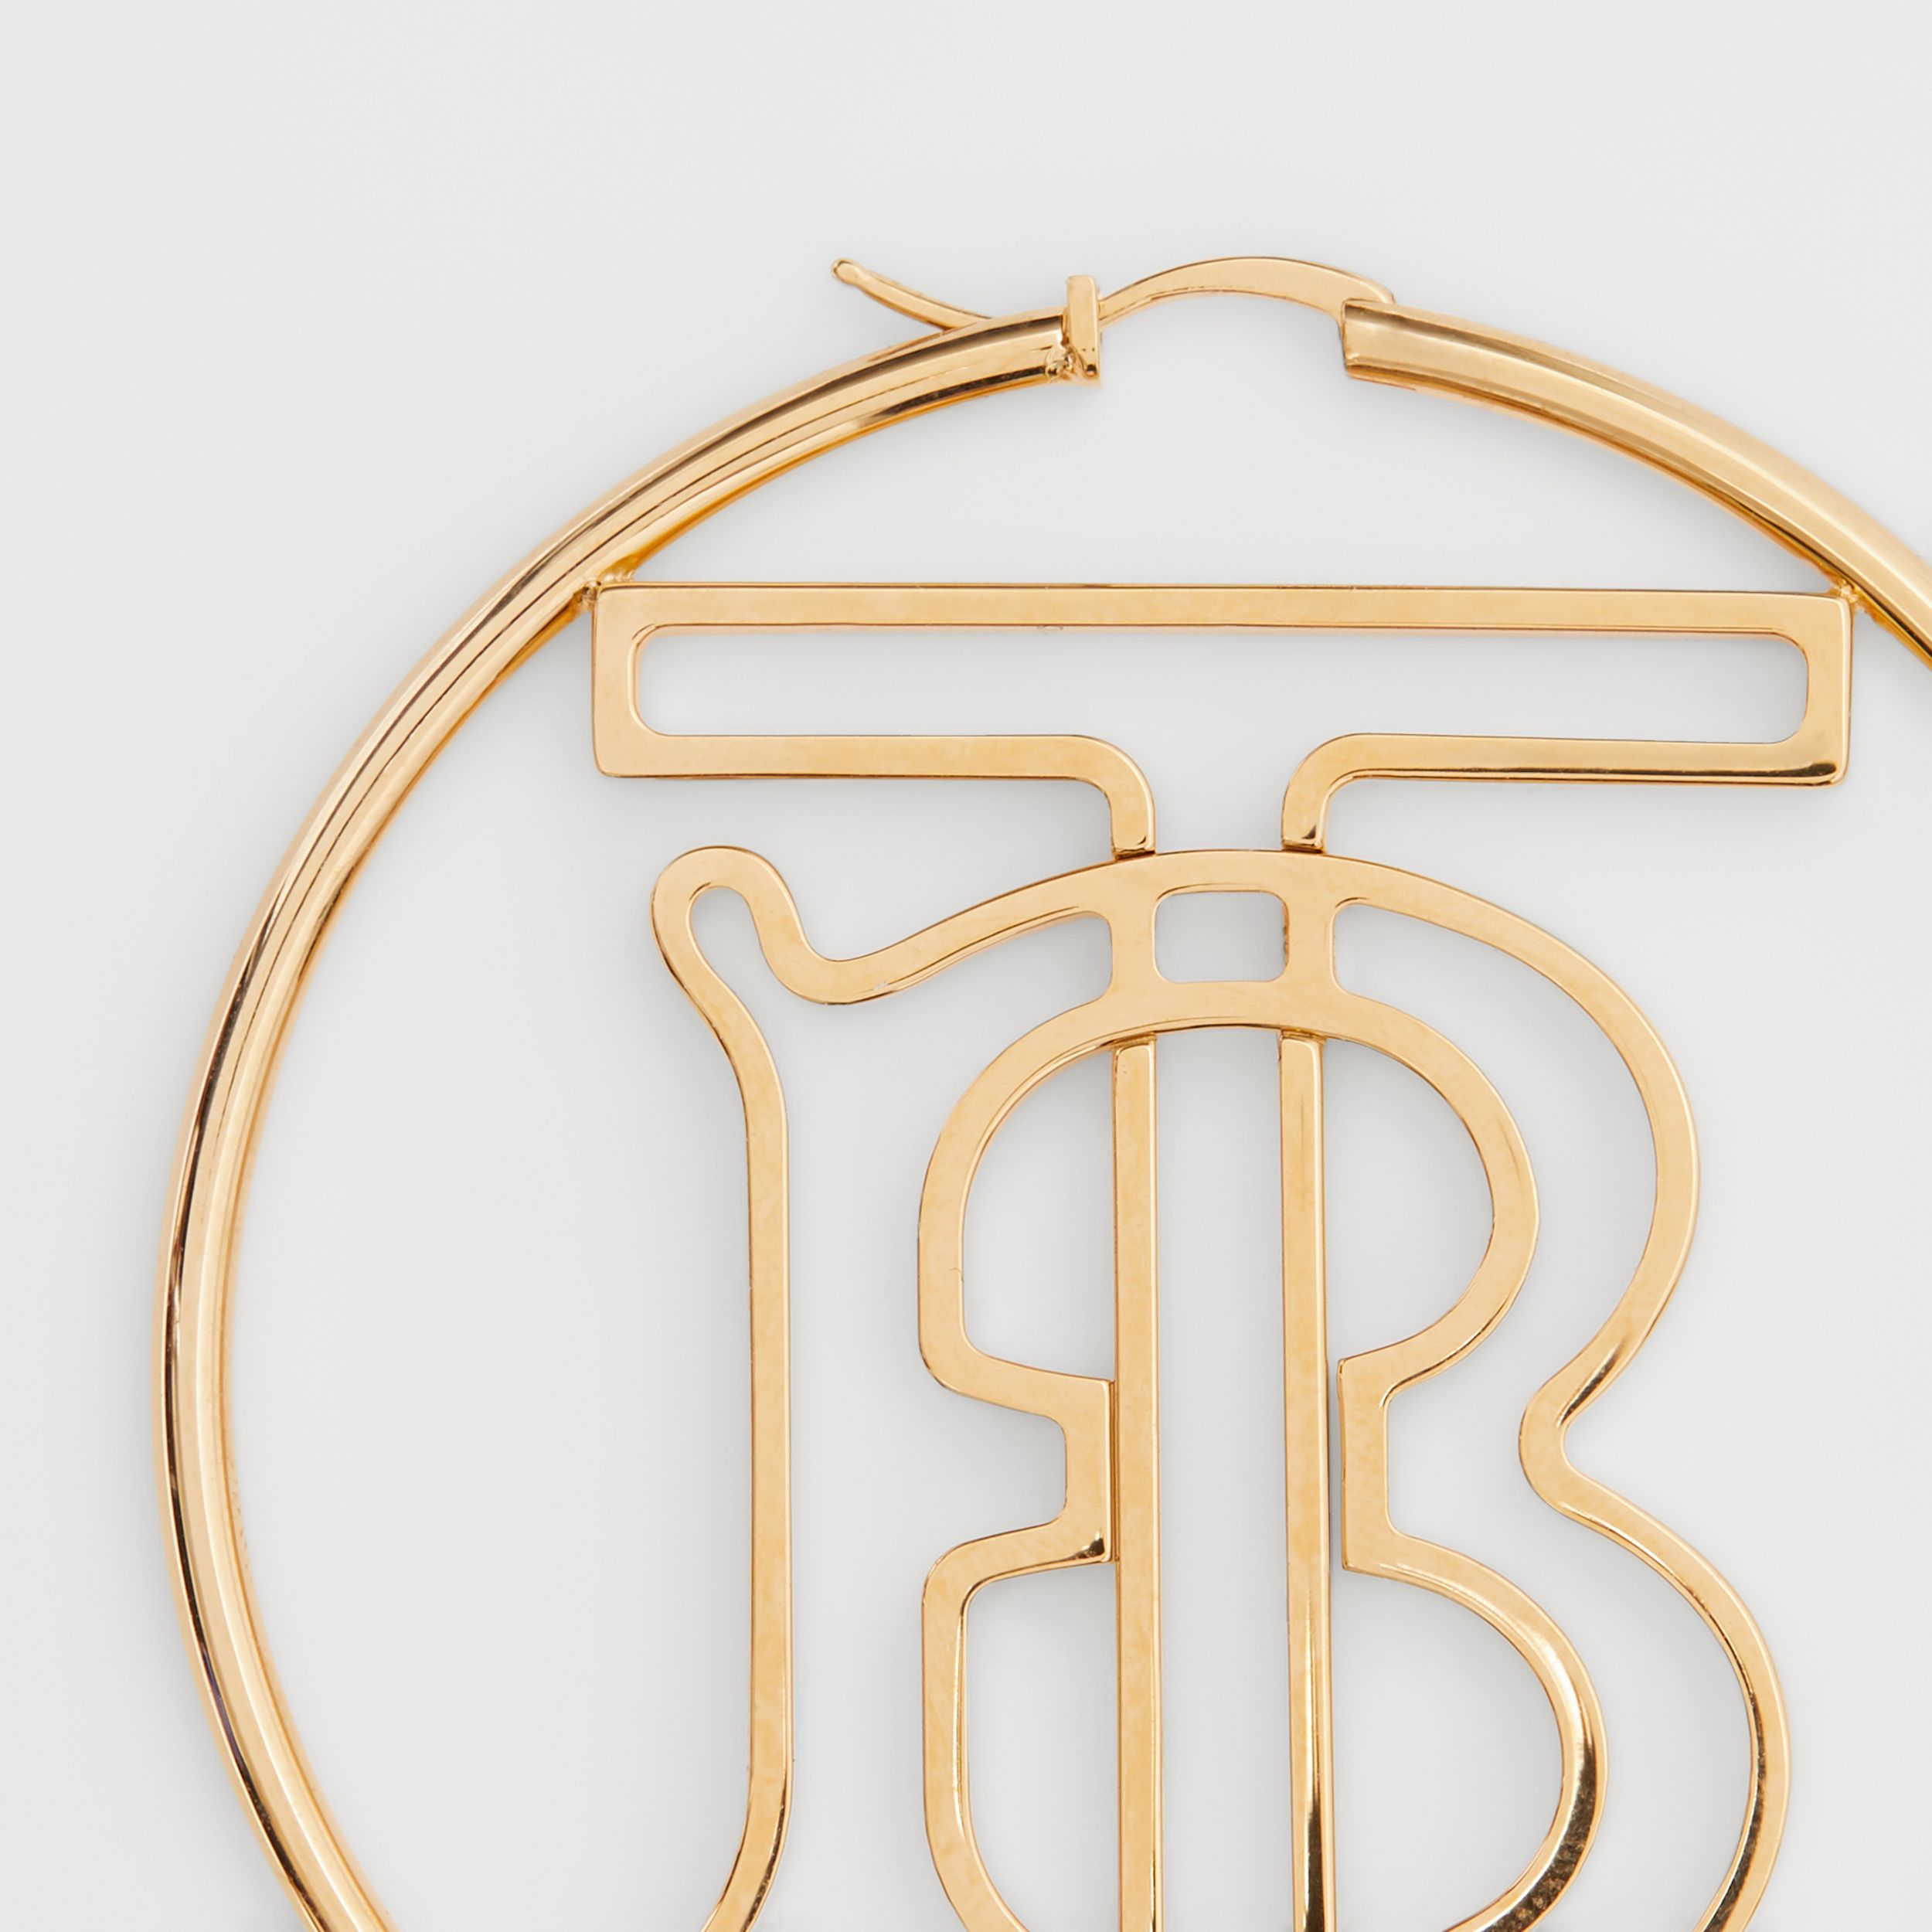 Gold-plated Monogram Motif Hoop Earrings in Light - Women | Burberry - 2